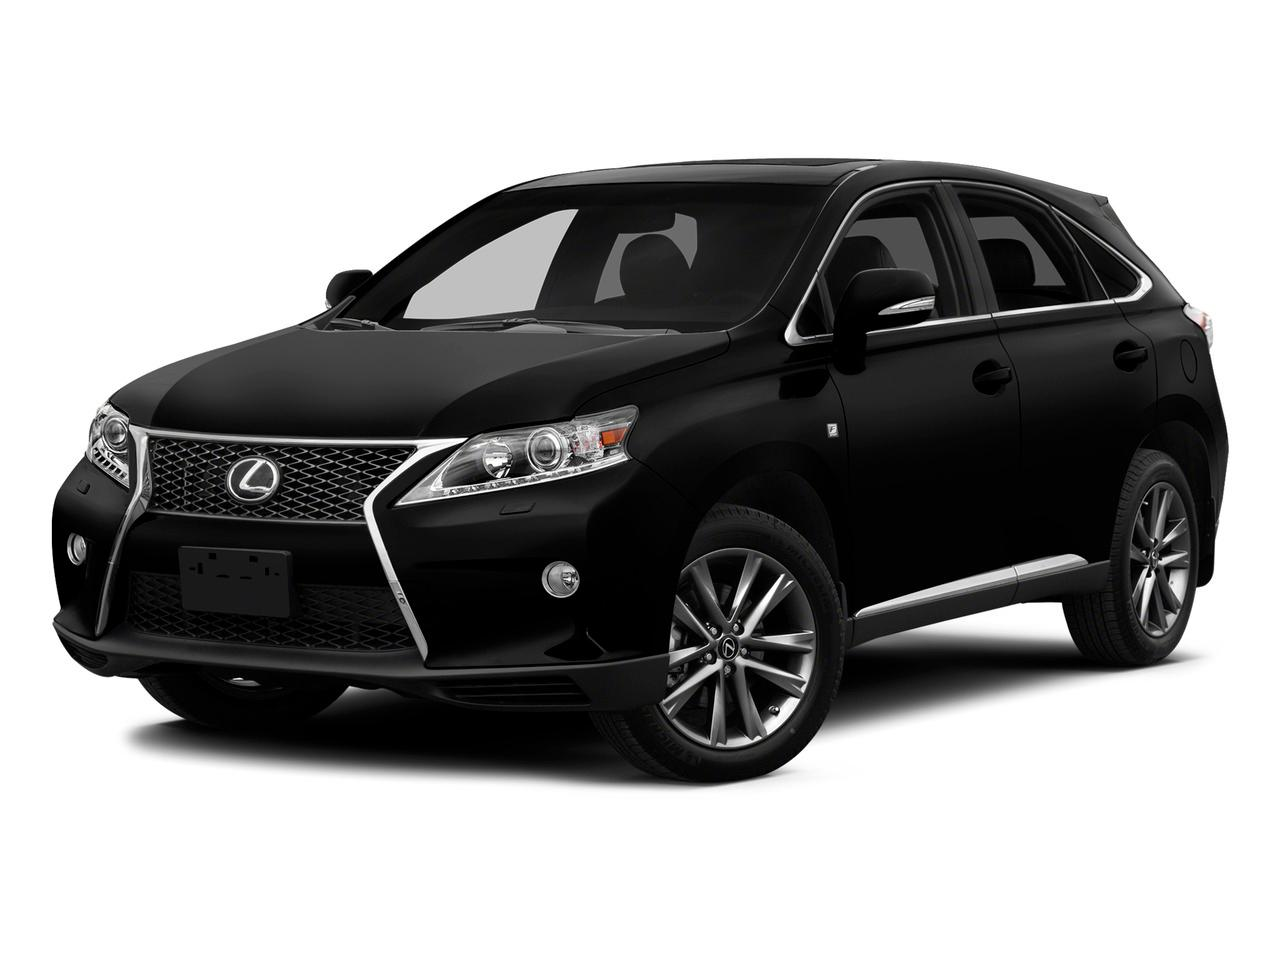 2015 Lexus RX 350 Vehicle Photo in Greeley, CO 80634